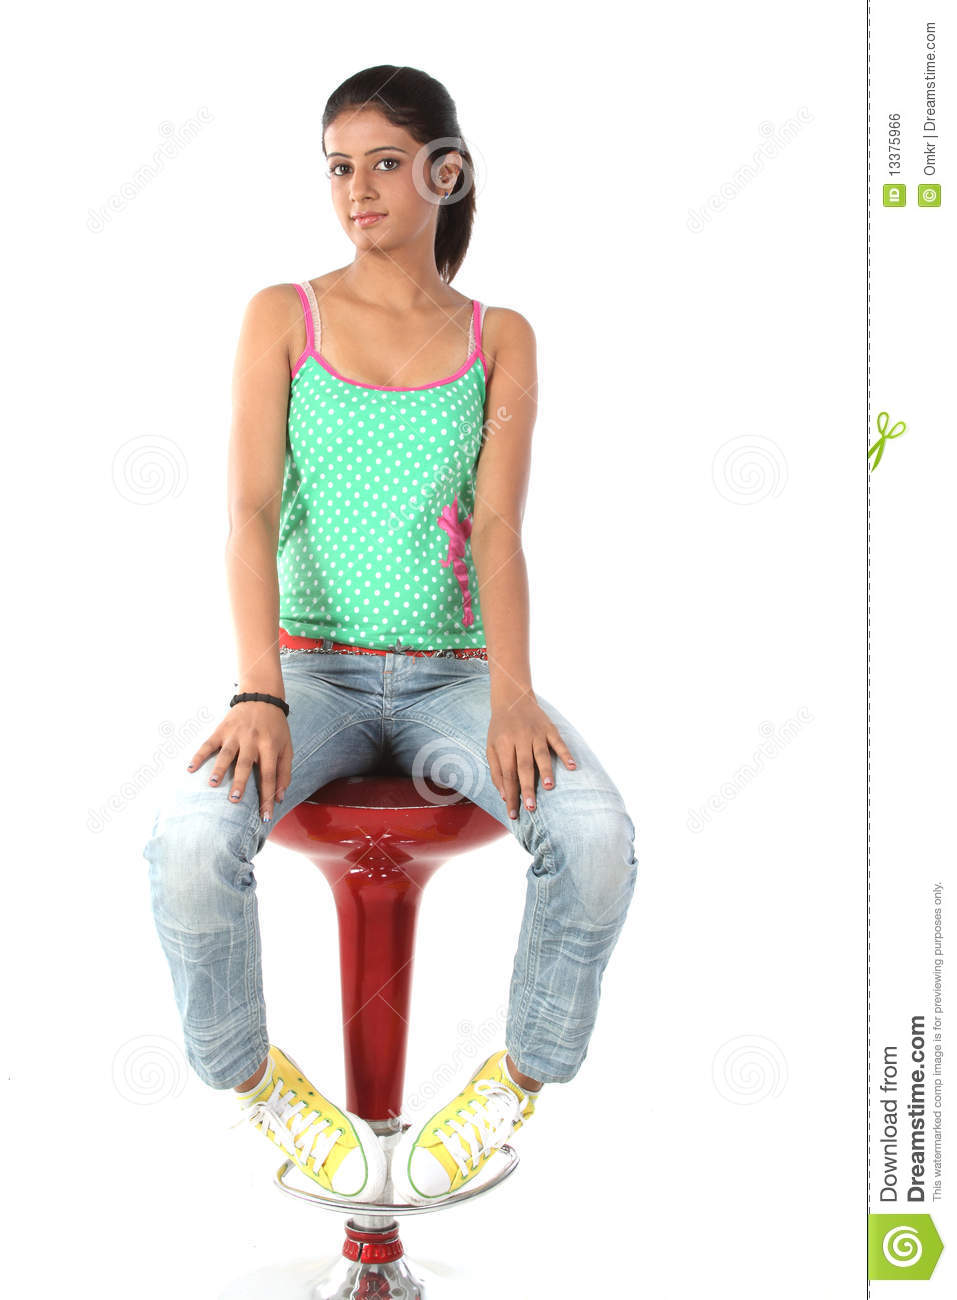 Are also teen girl sitting on chair